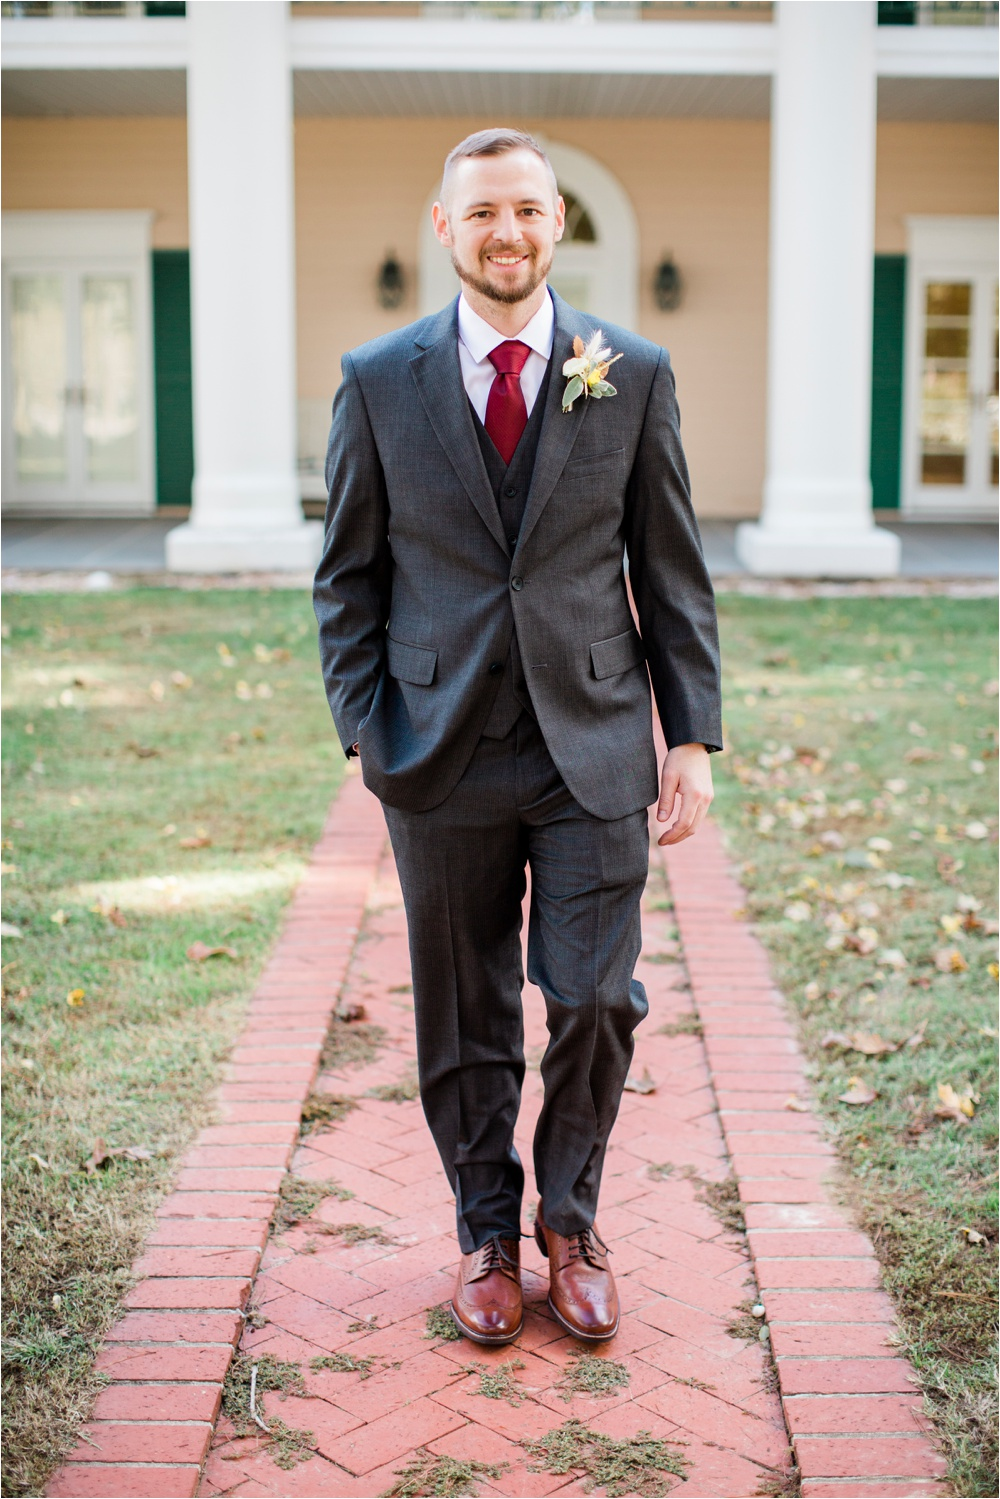 Alabama wedding photographer_018.jpg